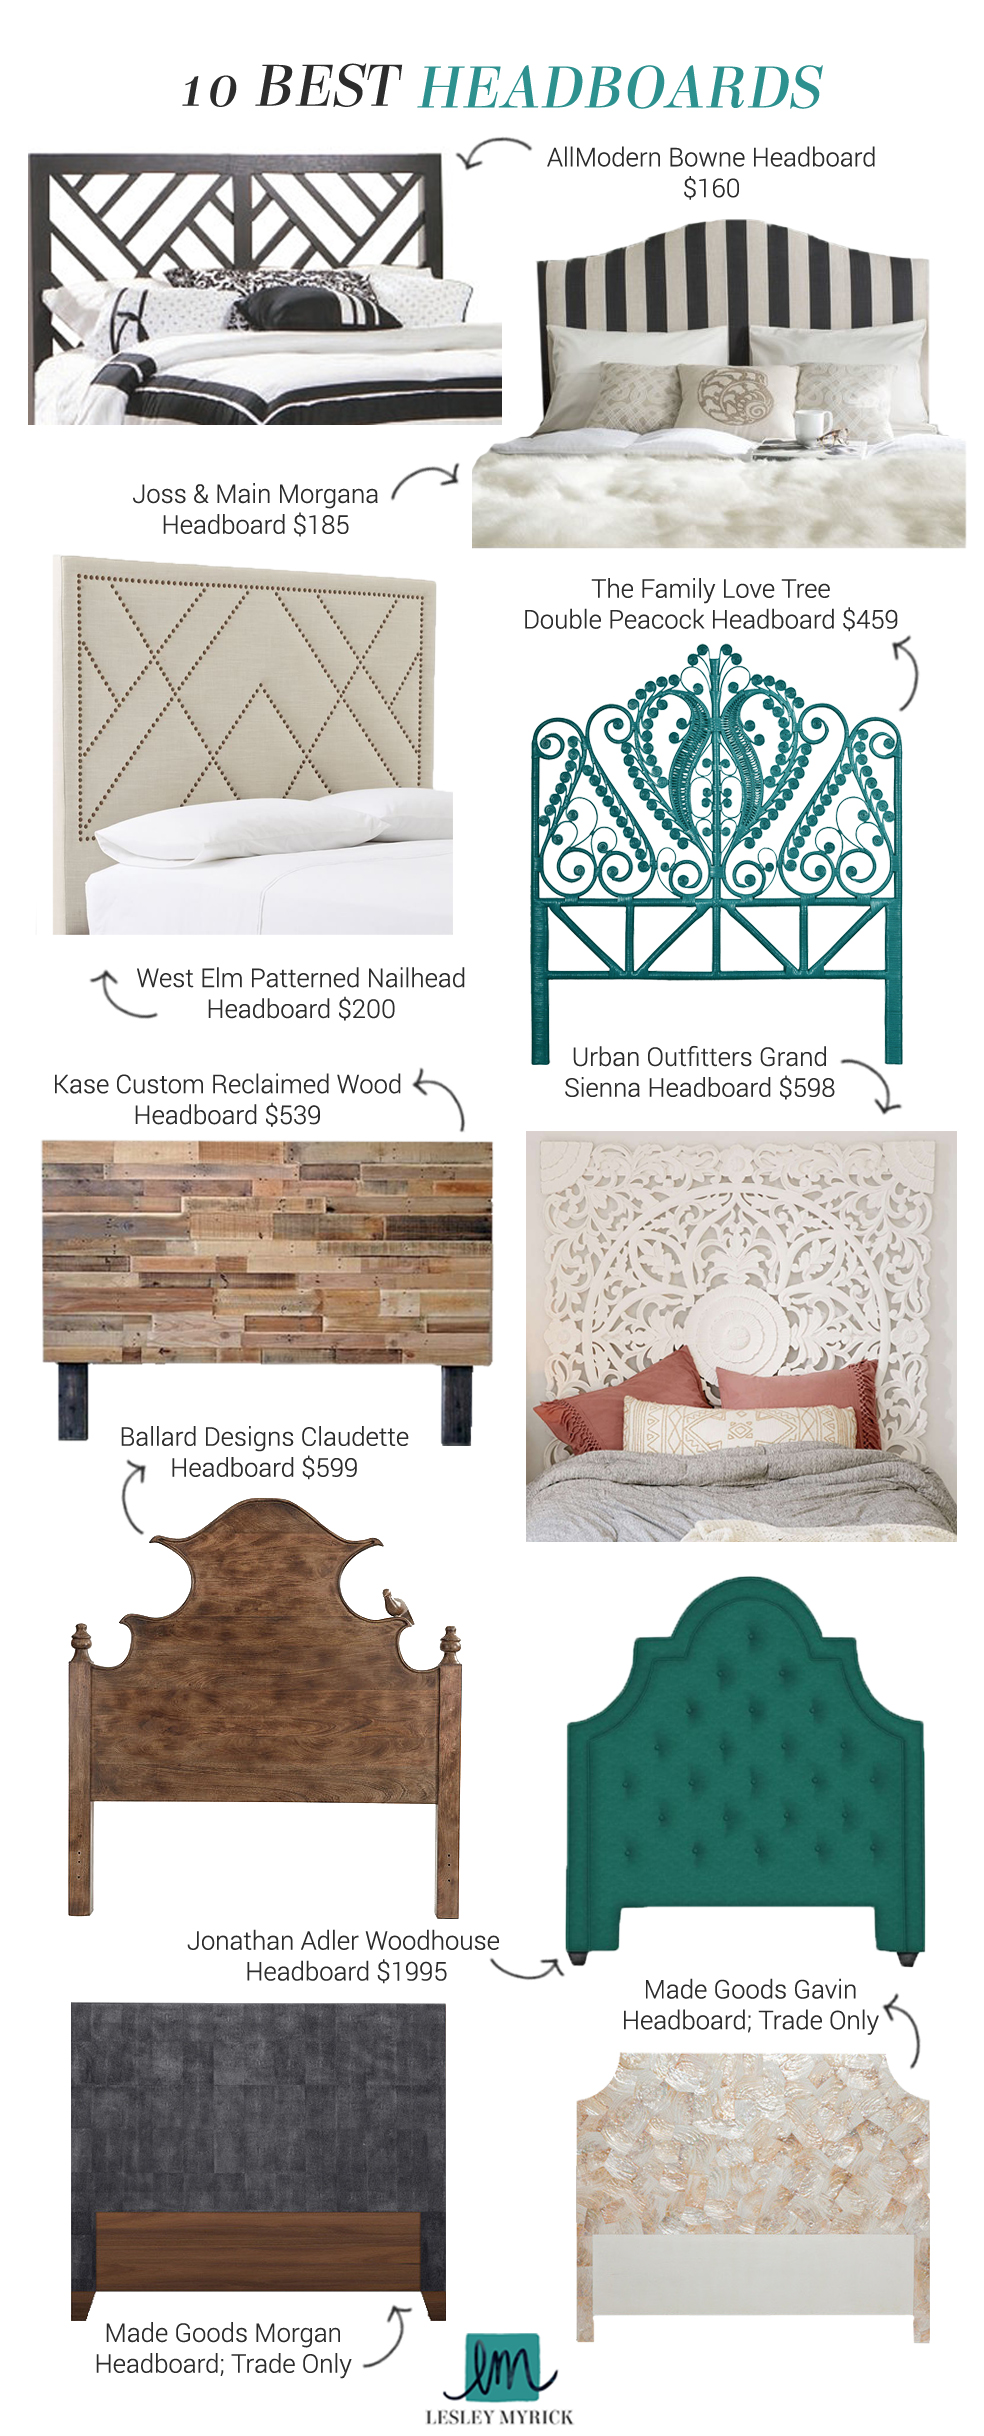 The 10 best headboard picks from interior stylist Lesley Myrick | Dress up your badass bedroom